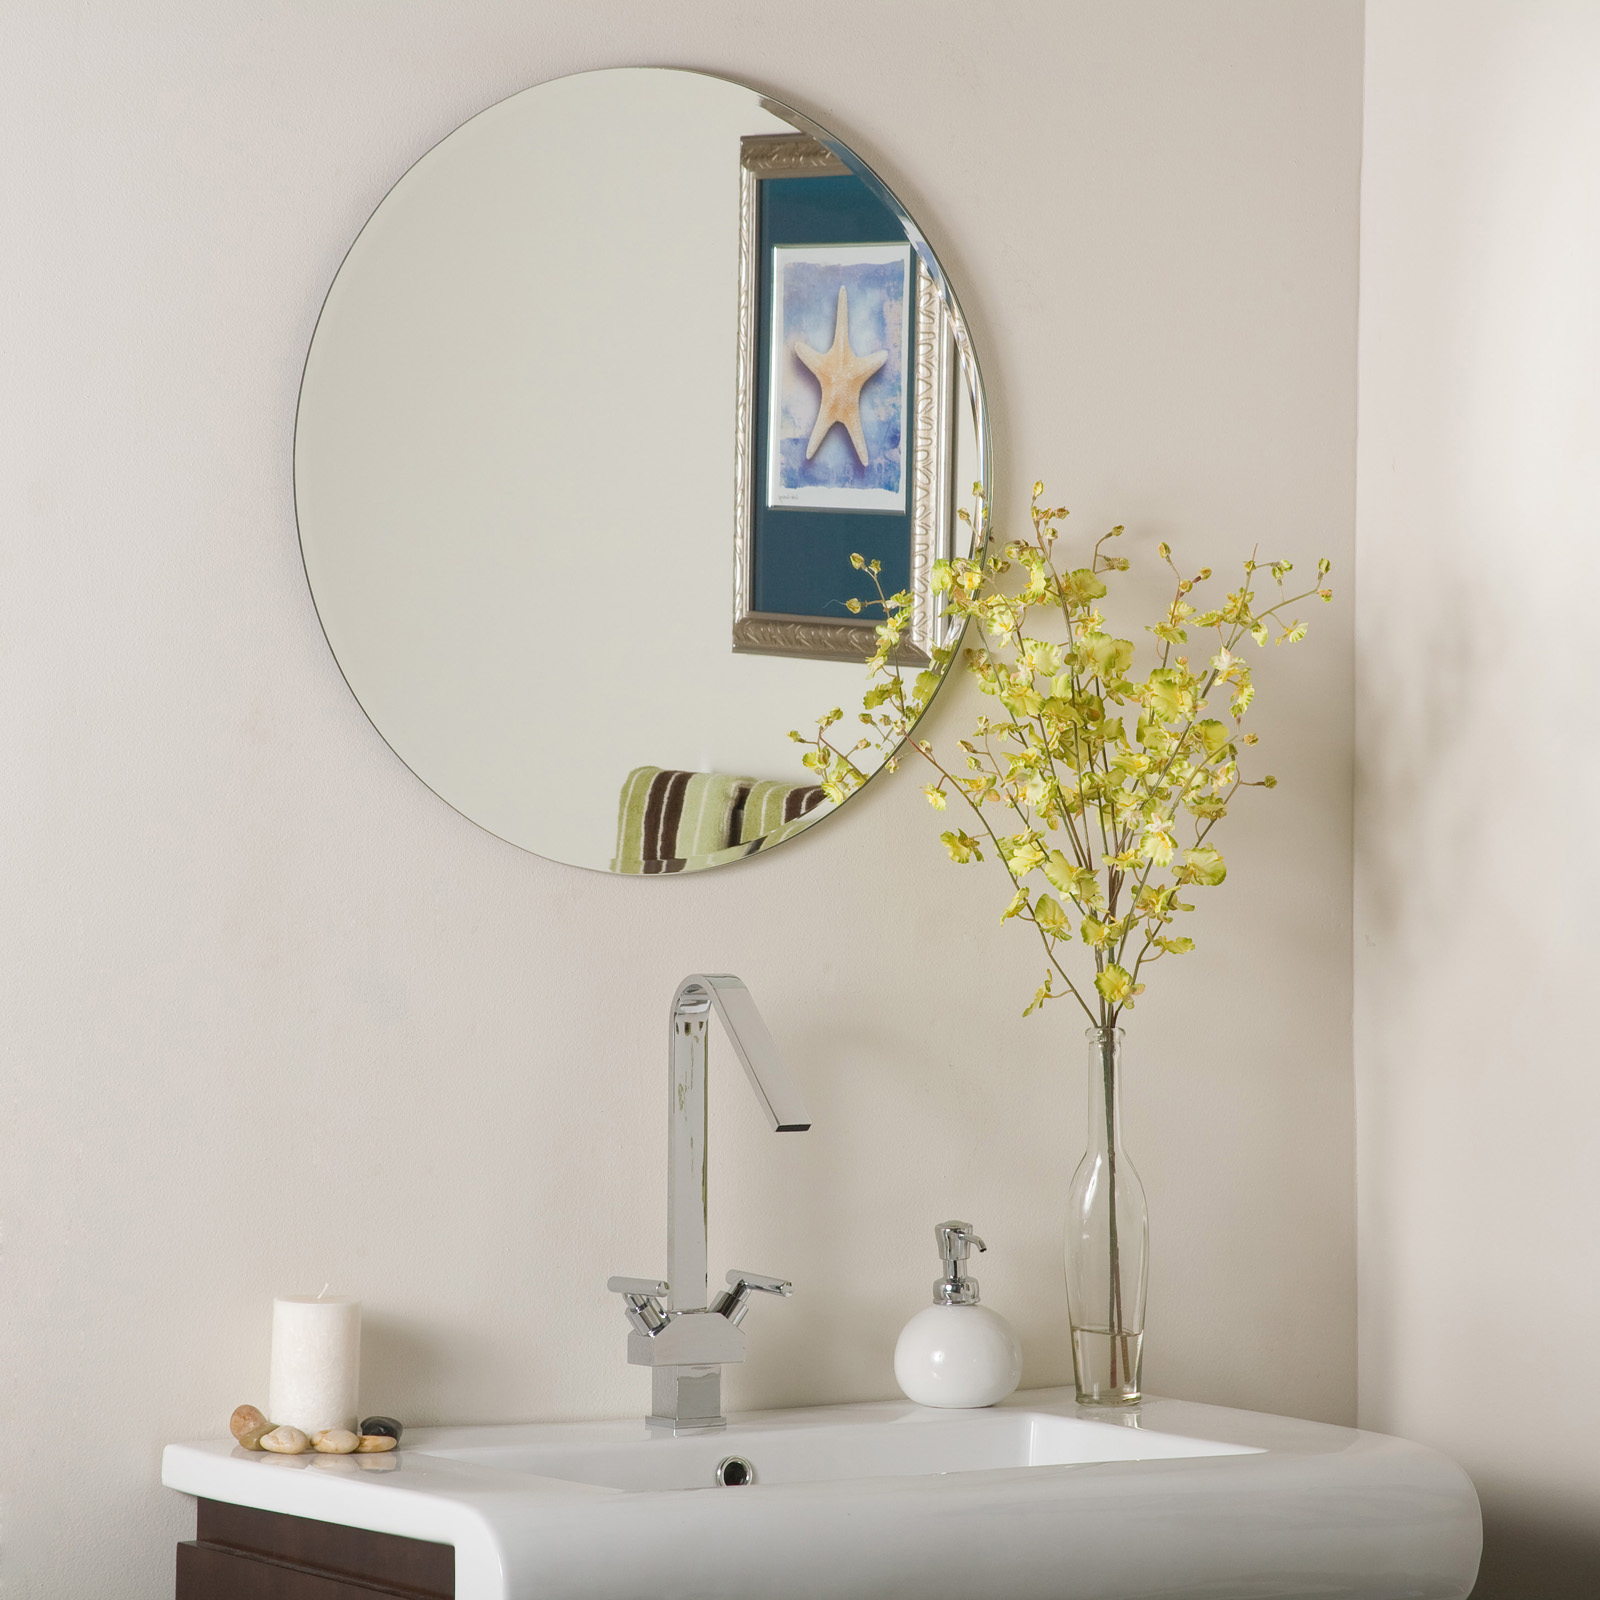 Frameless Round Beveled Mirror Image